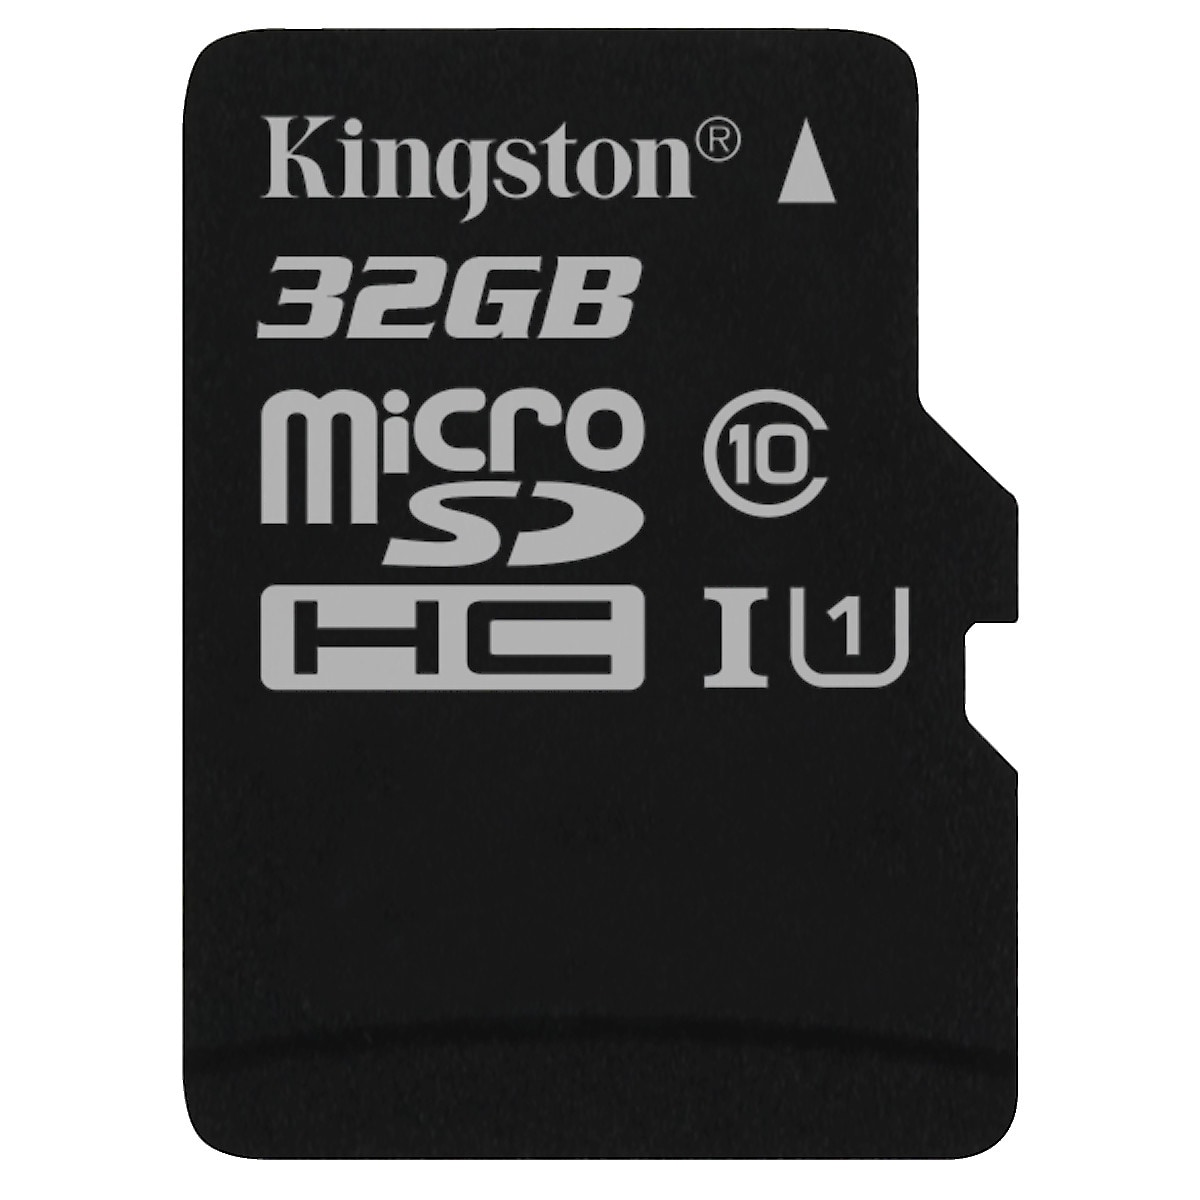 MicroSDHC/SDXC minneskort Klass 10 Kingston